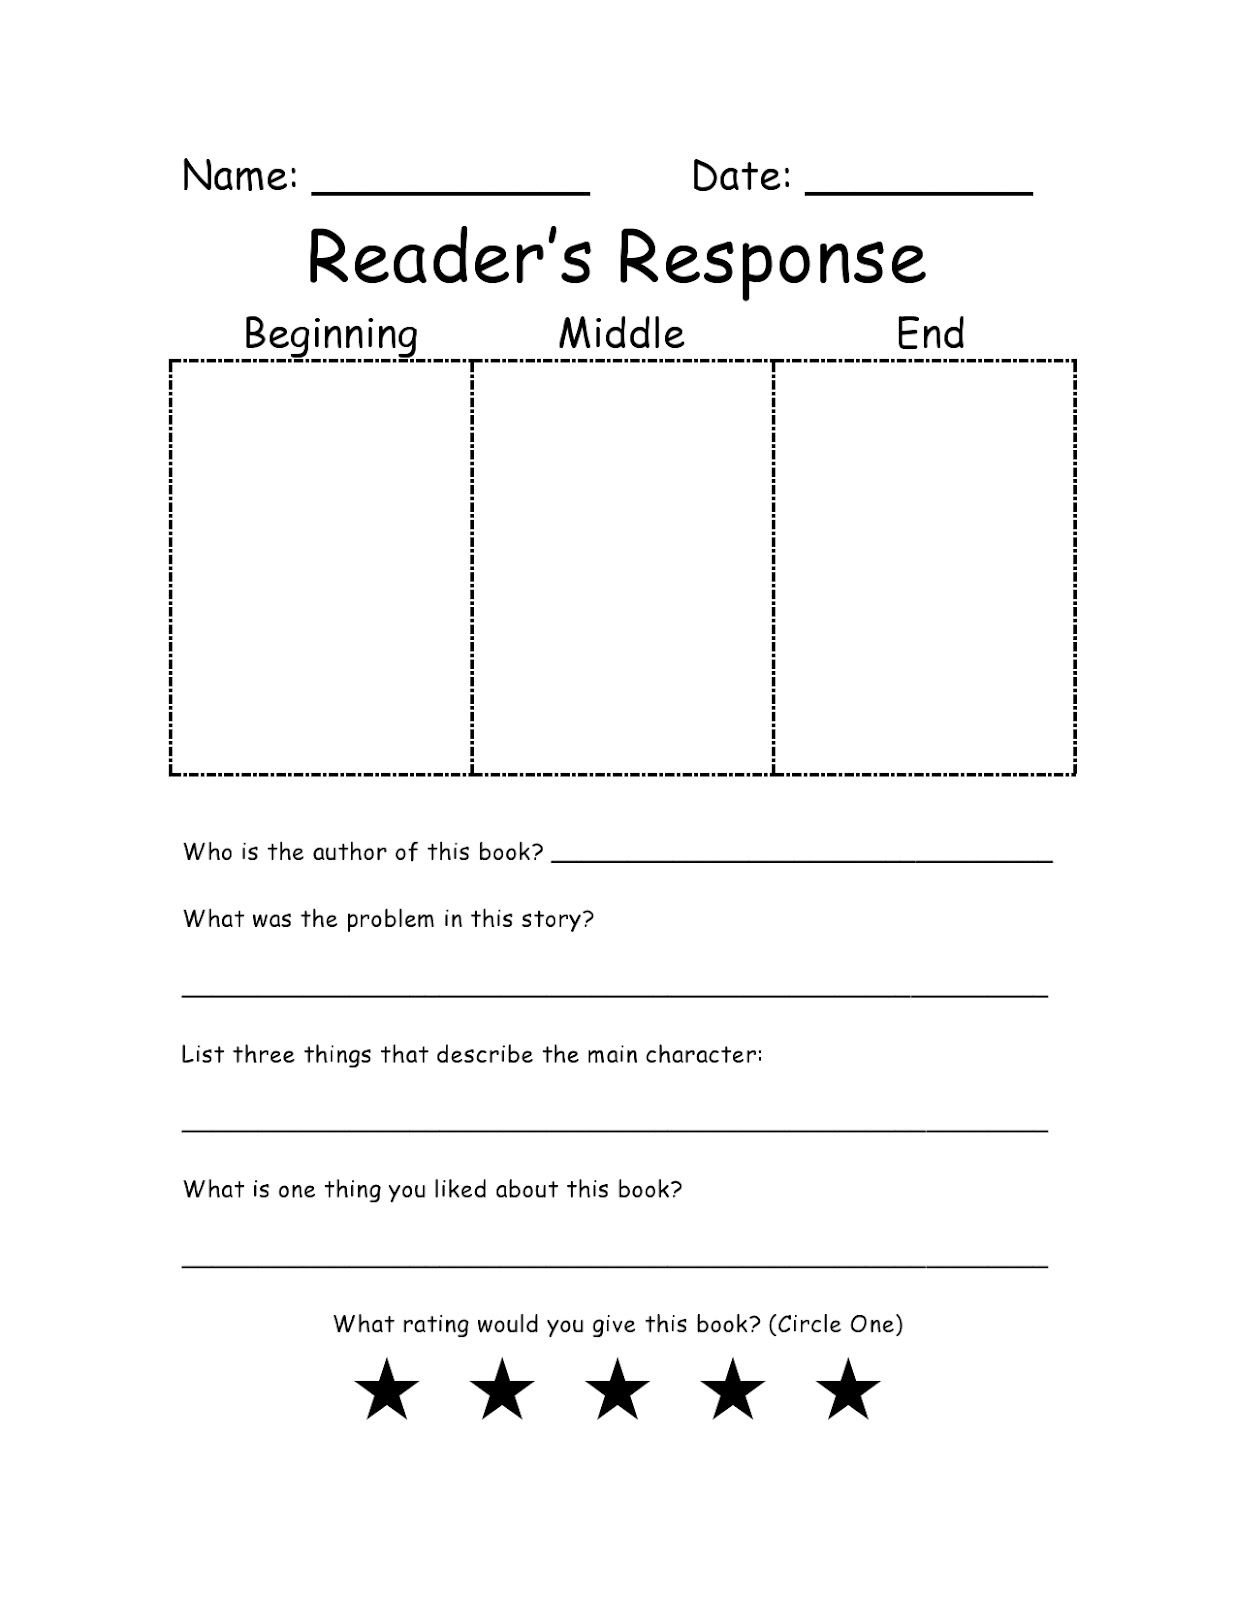 Beginning Middle And End Graphic Organizer Worksheet Examples   Reading  response [ 1600 x 1236 Pixel ]